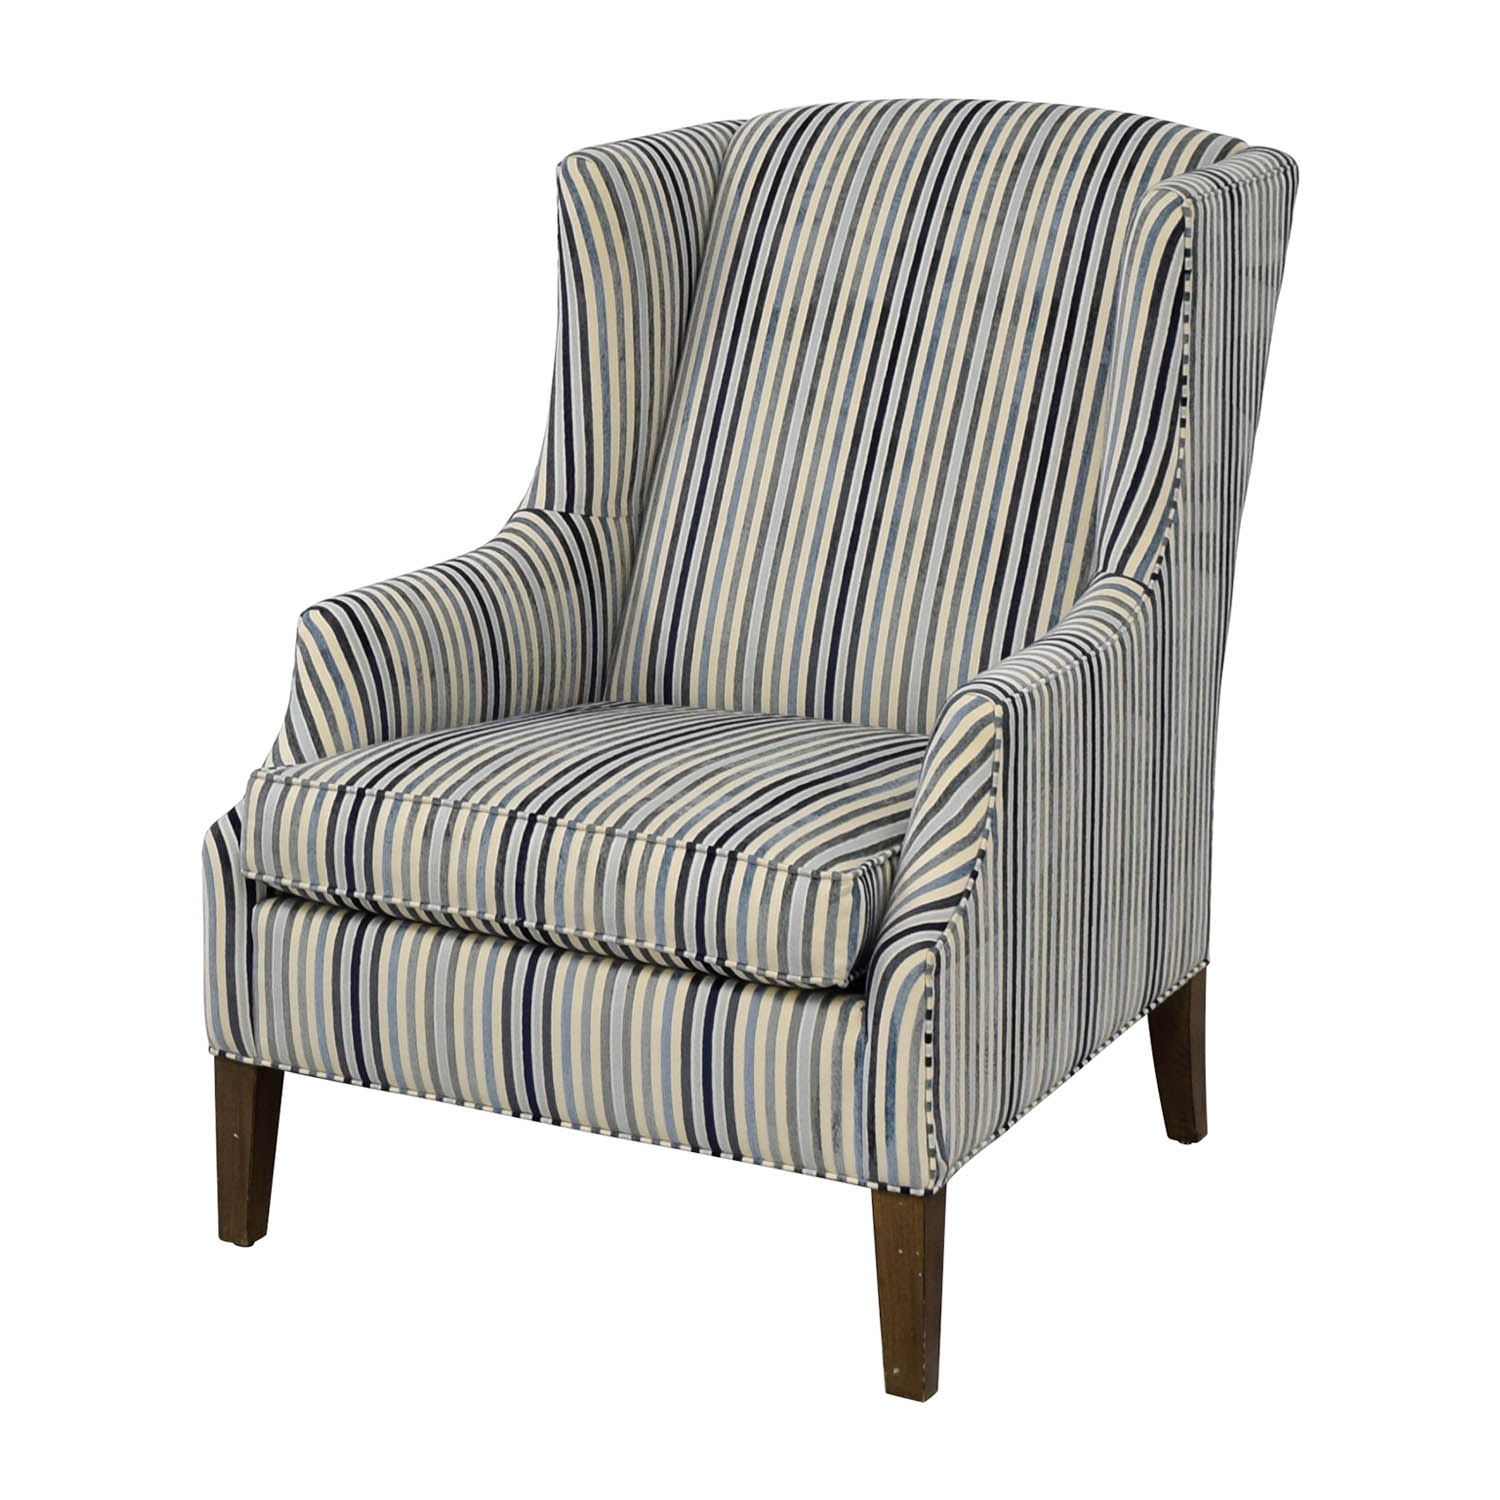 Ethan Allen Club Chairs 84 Off Ethan Allen Ethan Allen Custom Upholstered Striped Accent Chair Chairs